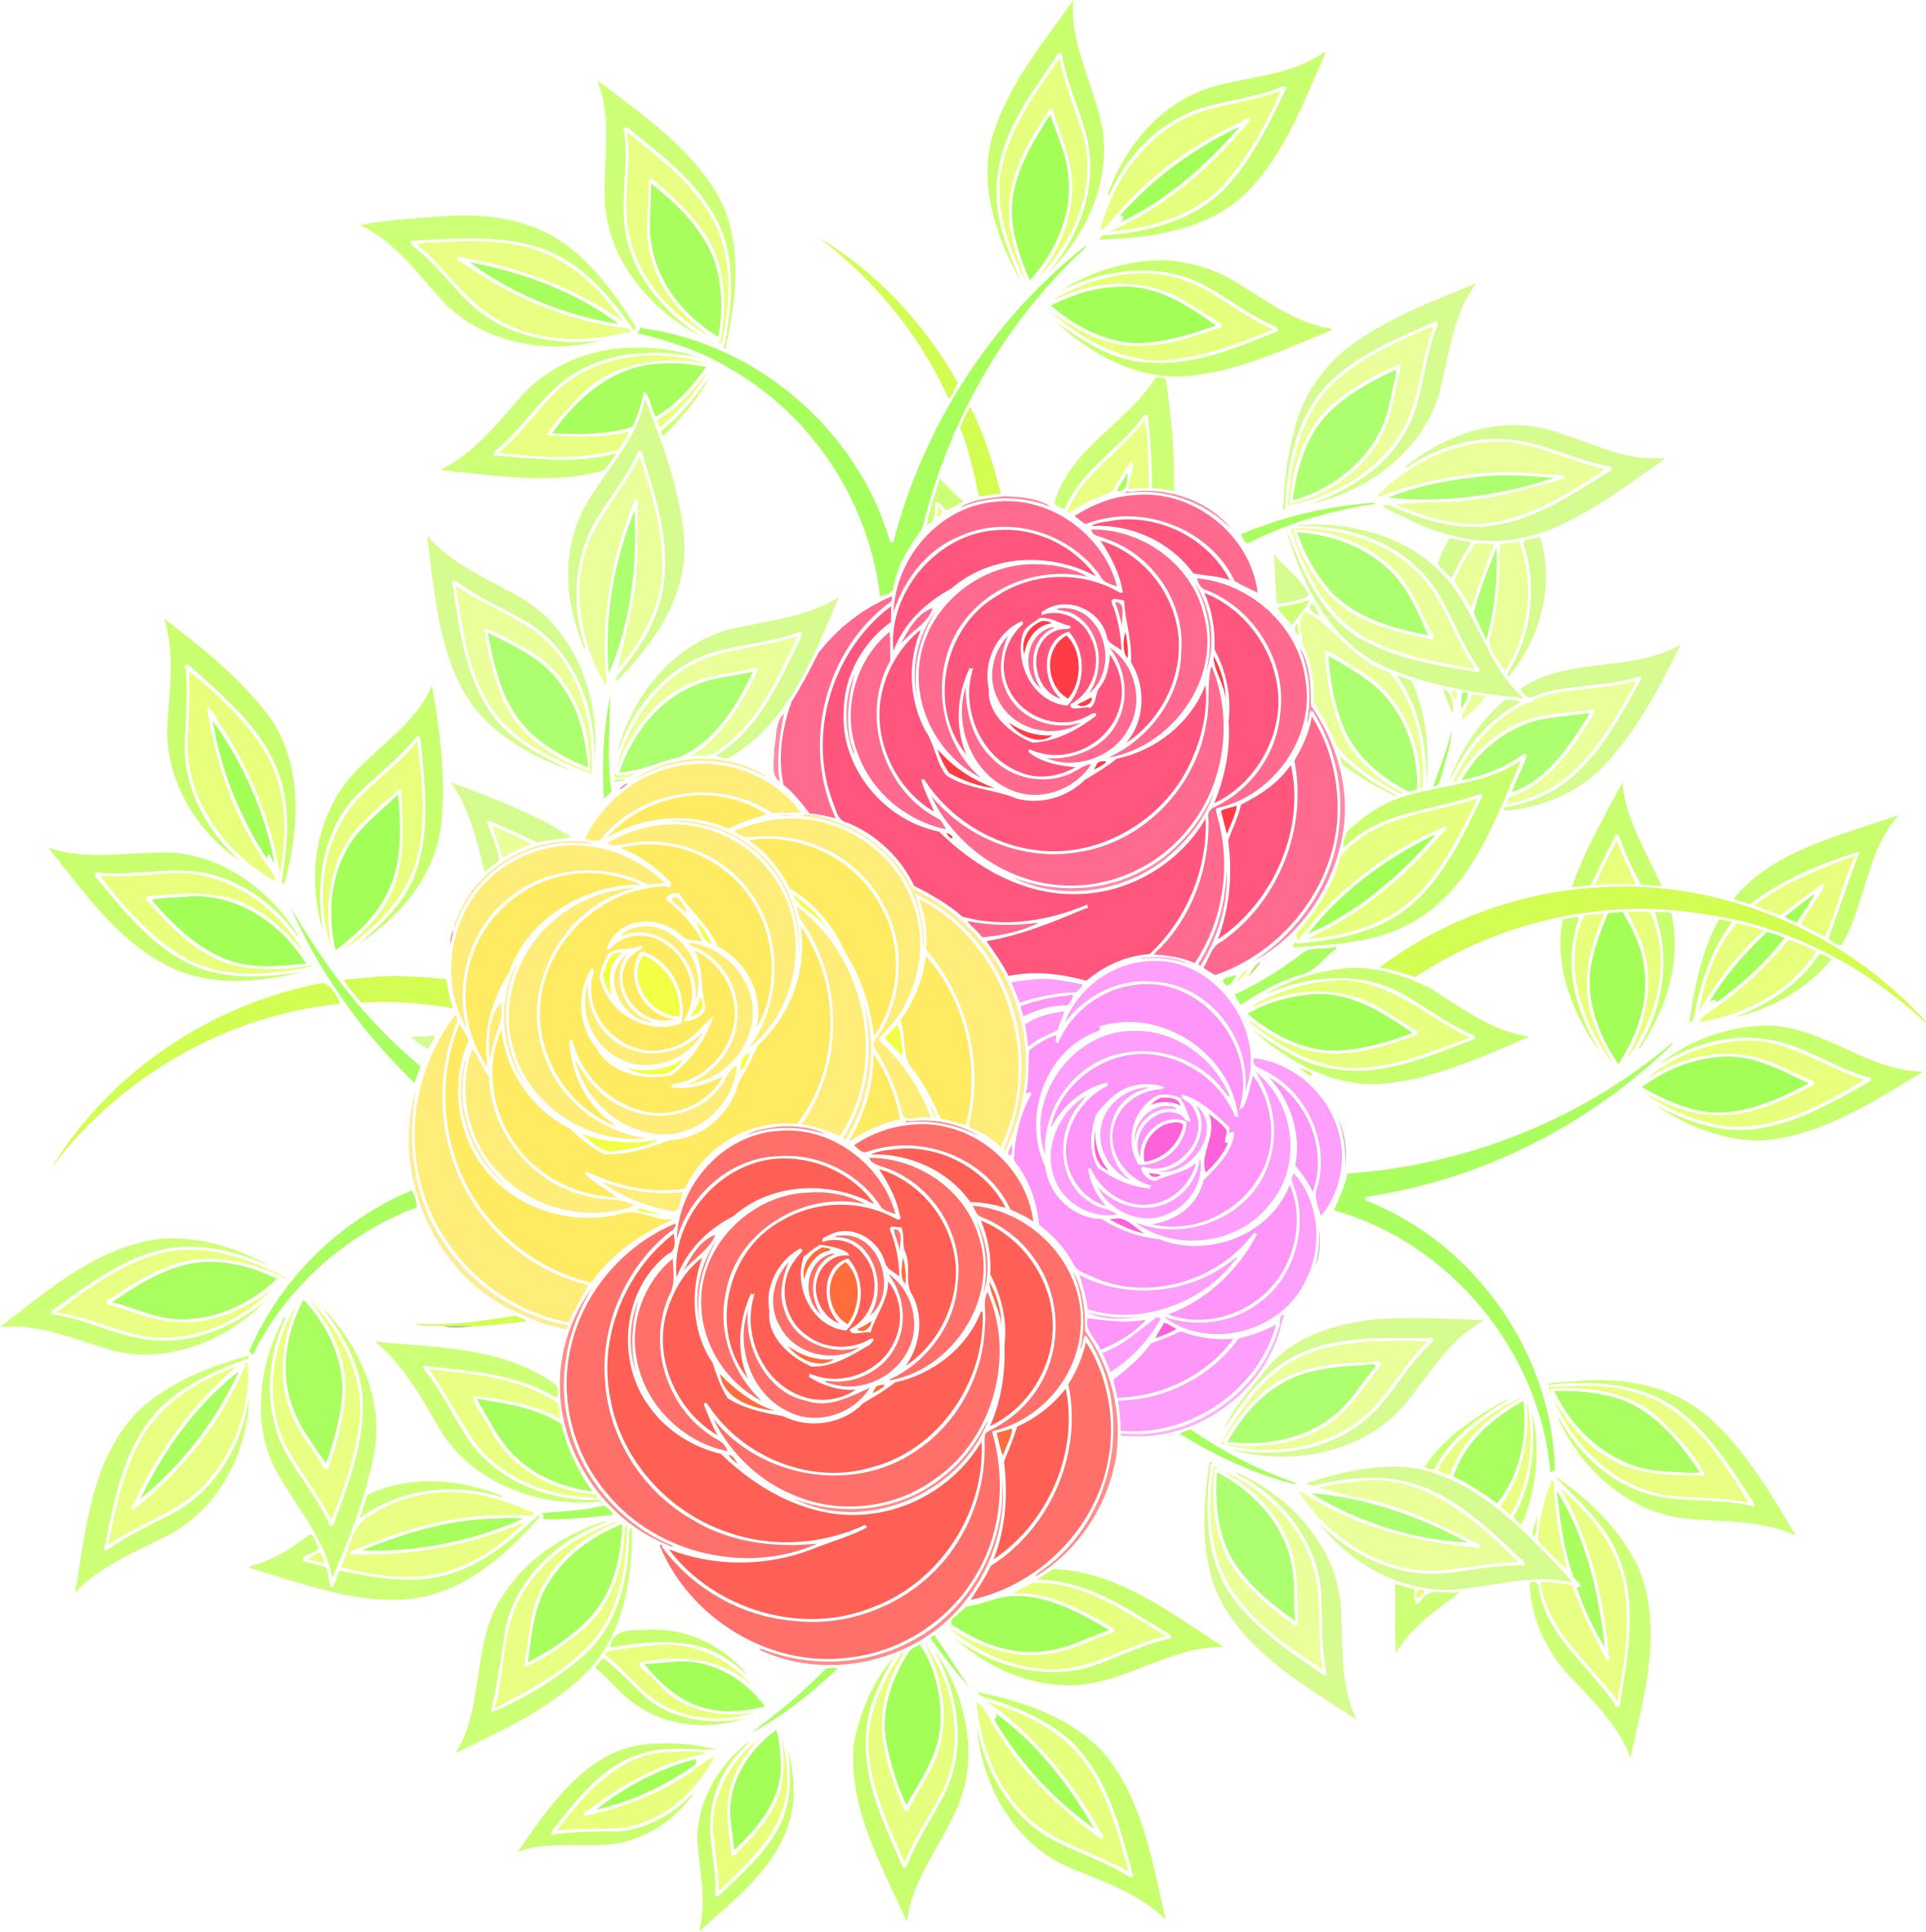 Roses 7 (colour 3) by Firkin